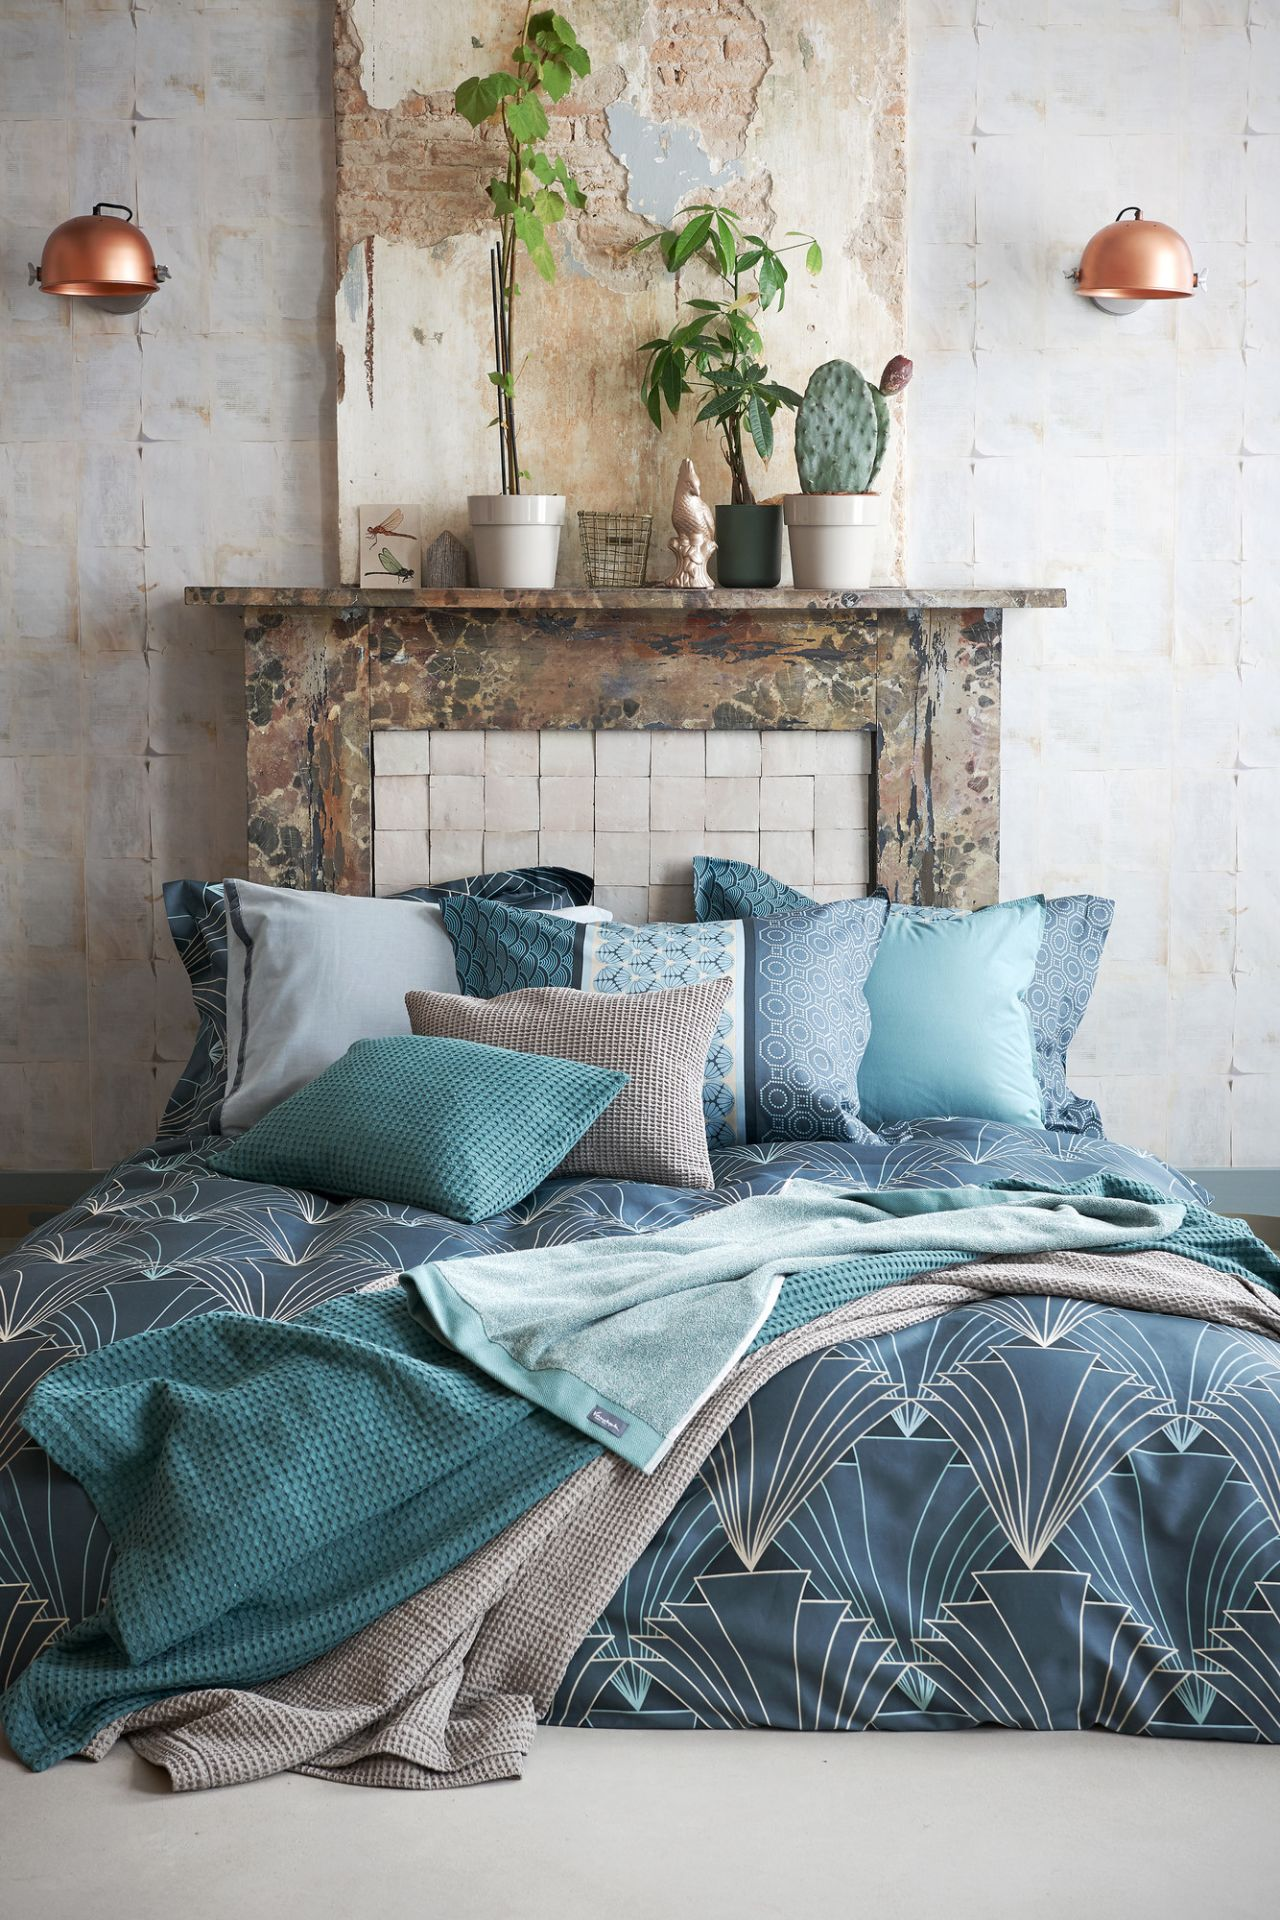 VanDyck bedtextiel Alpha, Style 166 Vintage green, Washed cotton 166 vintage green, Pure 16 184 faded denim, Home 71 048 Sand, Home pique waffel 166 vintage green bij Slaapkenner Rademakers in [[plaatsnaam]